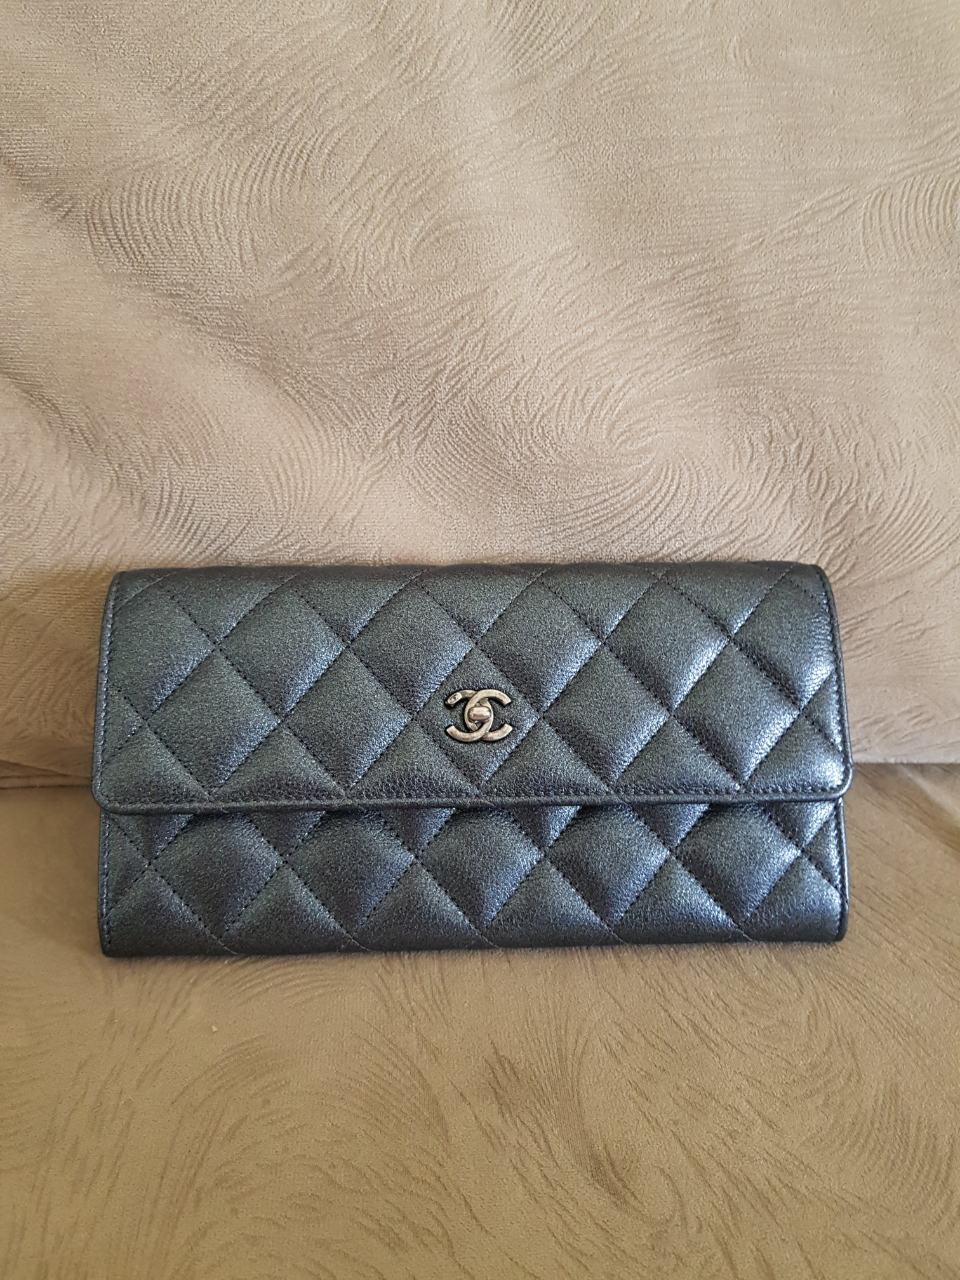 chanel wallet philippines